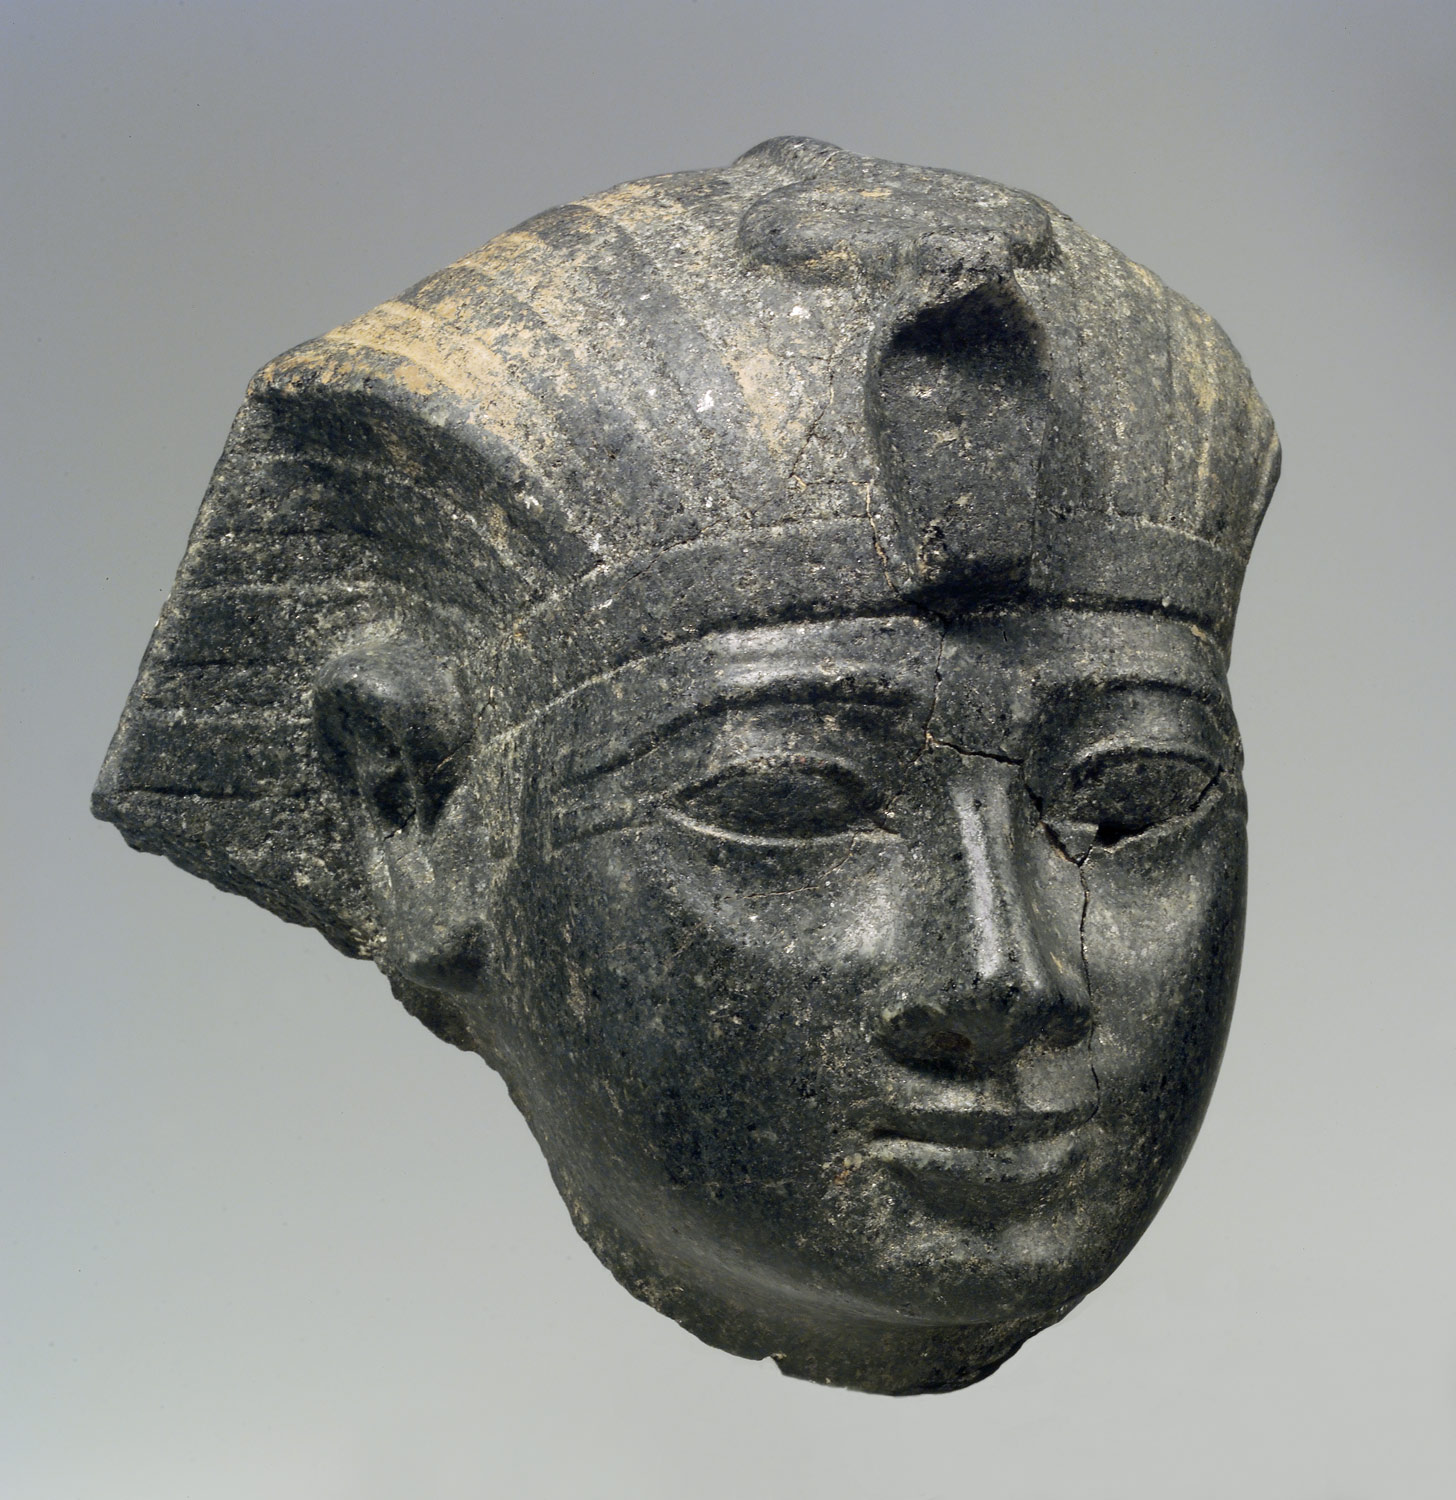 Head of Amenhotep II